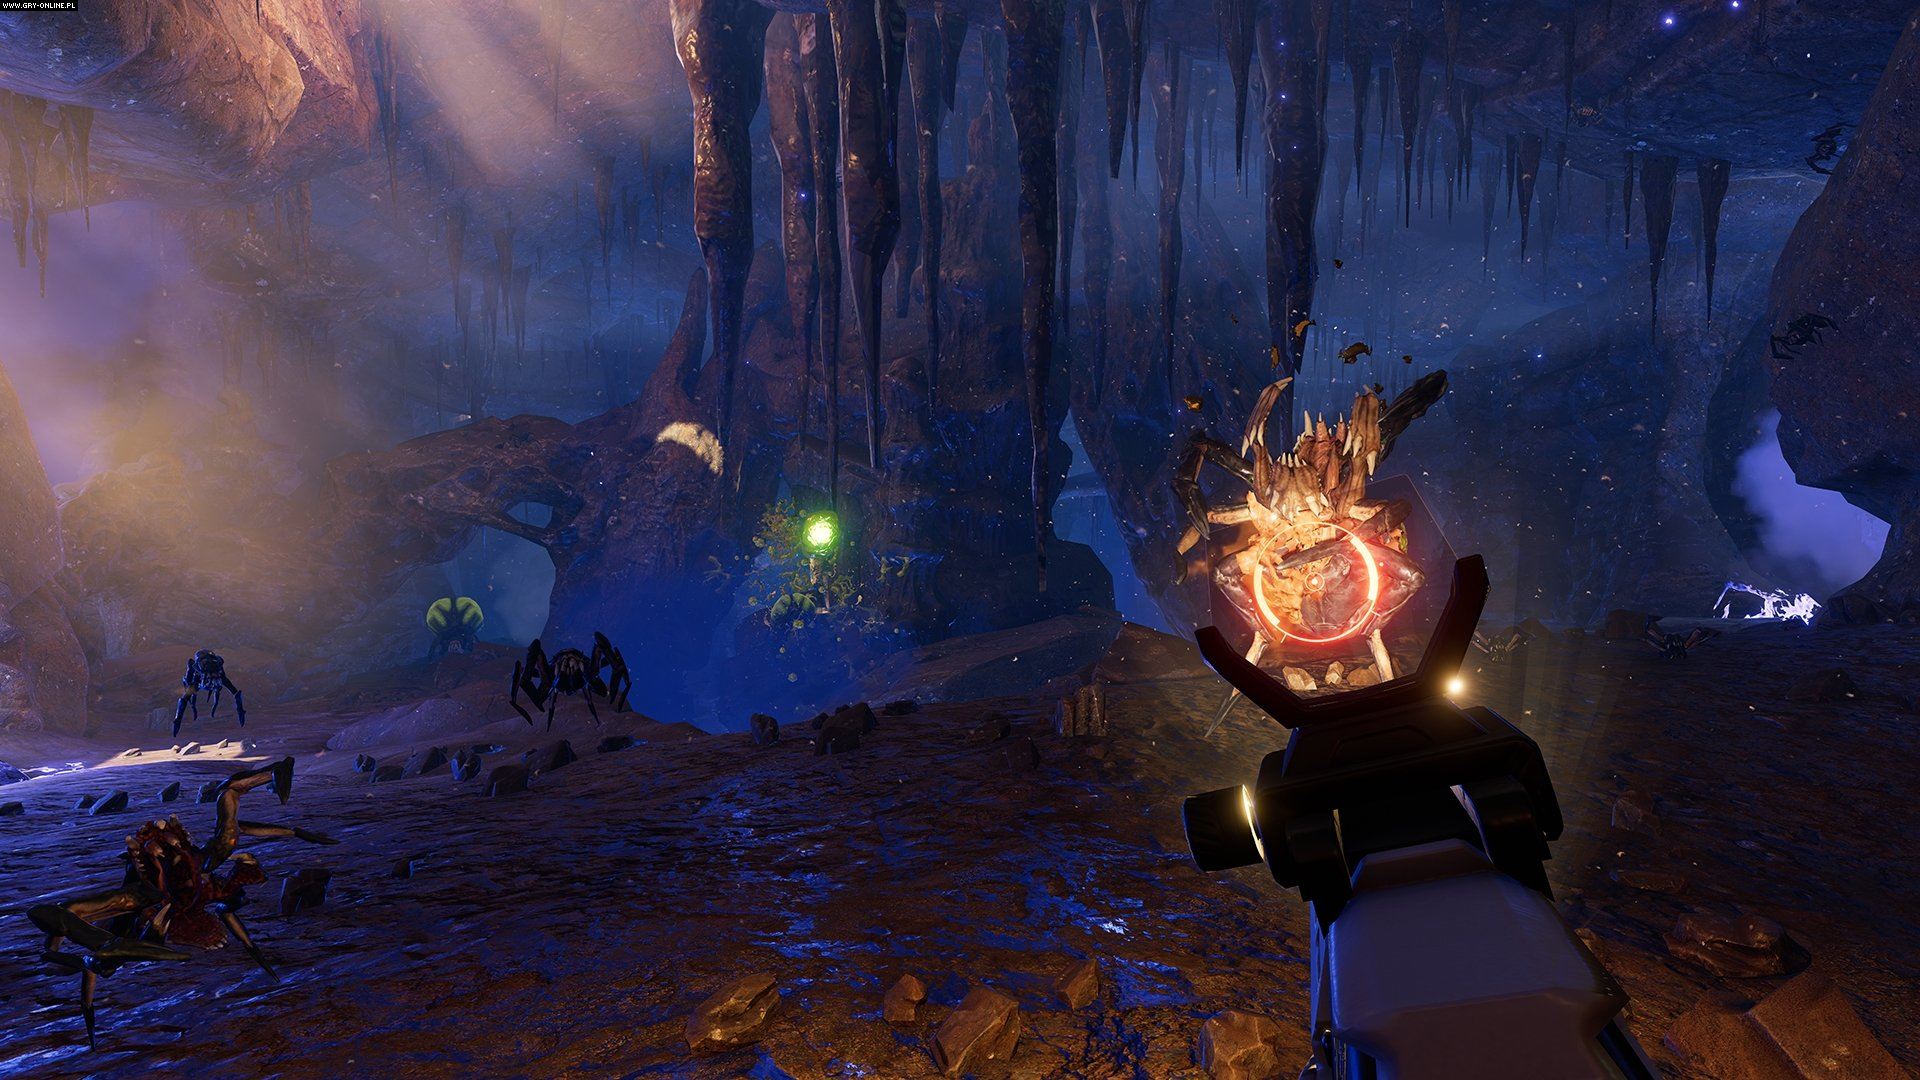 Farpoint PS4 Games Image 6/10, Impulse Gear, Sony Interactive Entertainment